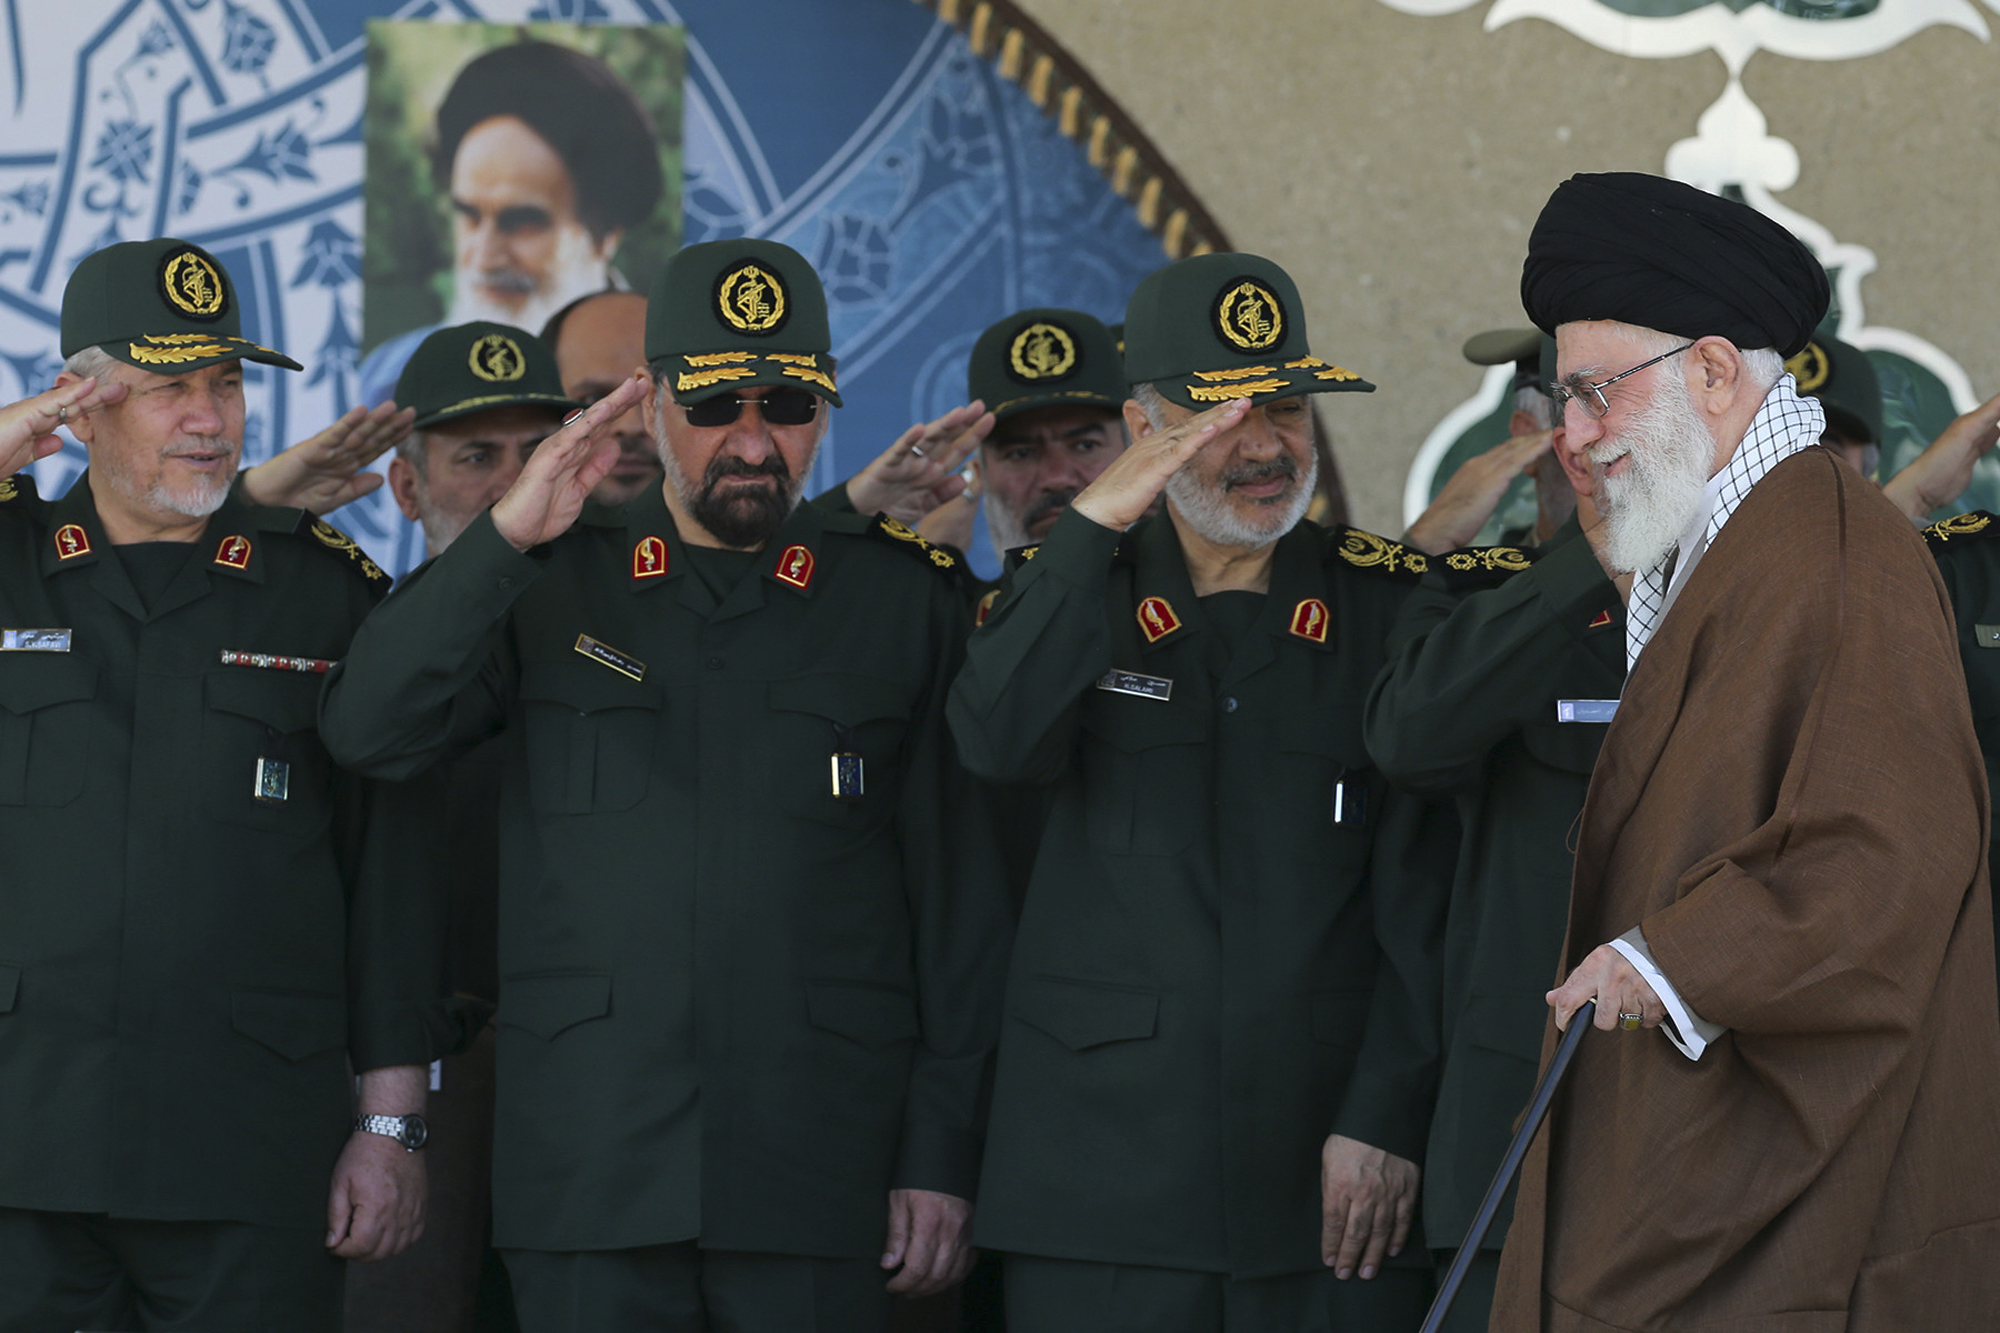 Iranian Supreme Leader, Ayatollah Ali Khamenei, at Revolutionary Guards officers' graduation ceremony.